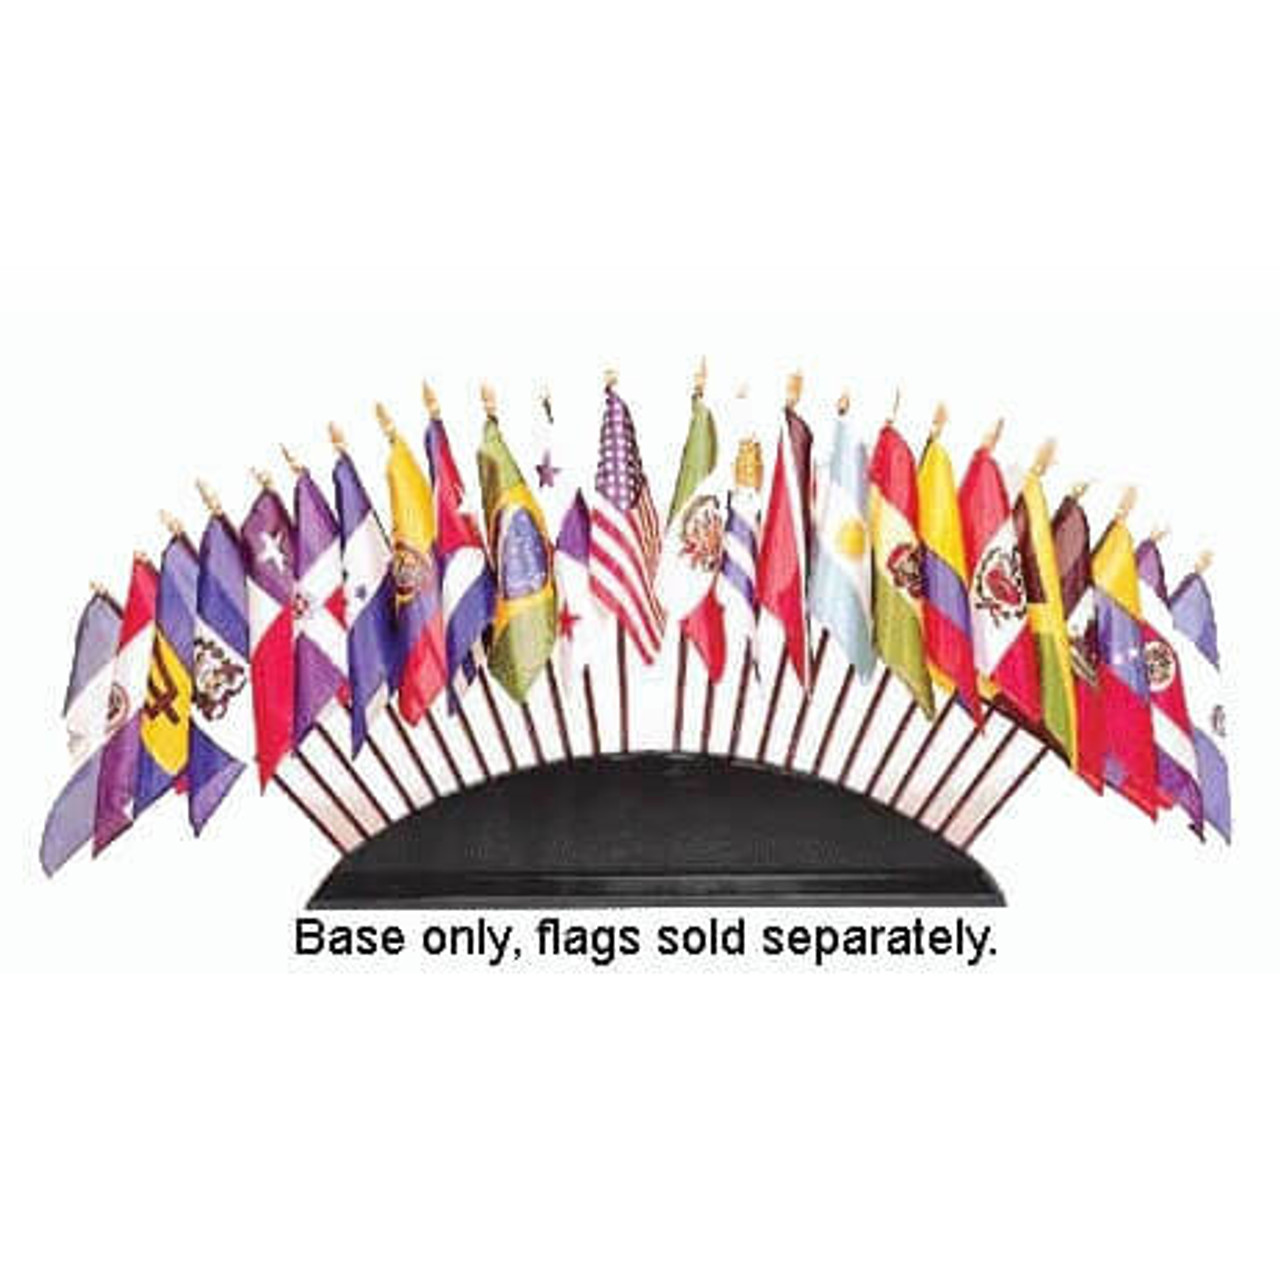 Organization of American States Wood Base. Different country flags are displayed on wood base. Black text at center that reads 'Base only, flags sold separately.'